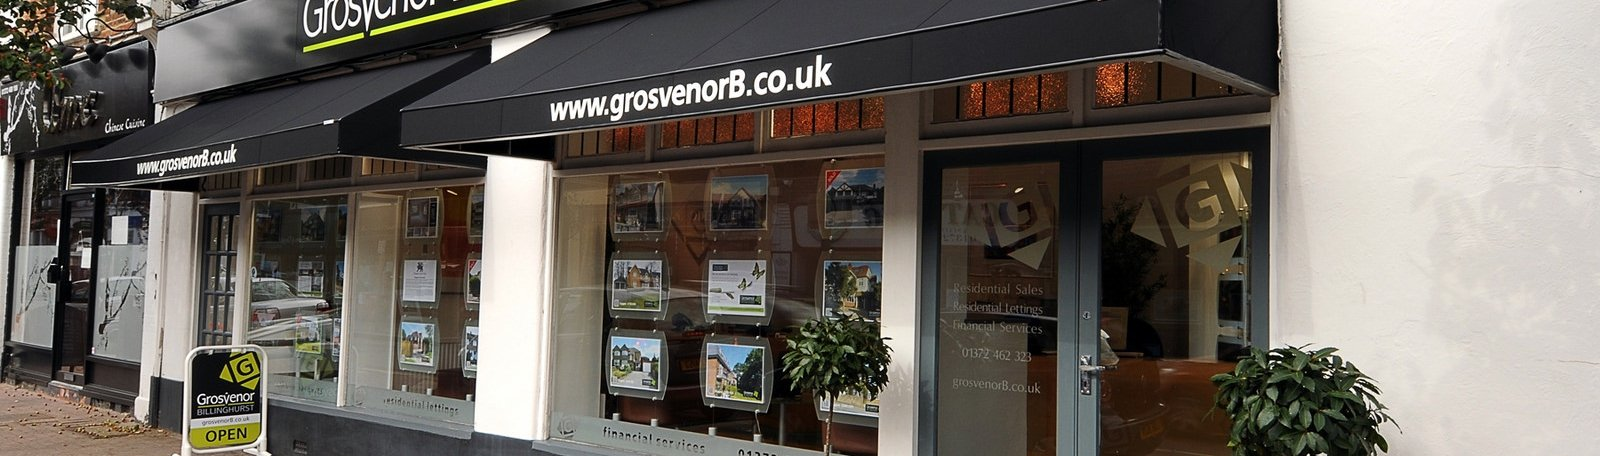 Offices Claygate Estate Banner Grosvenor Billinghurst